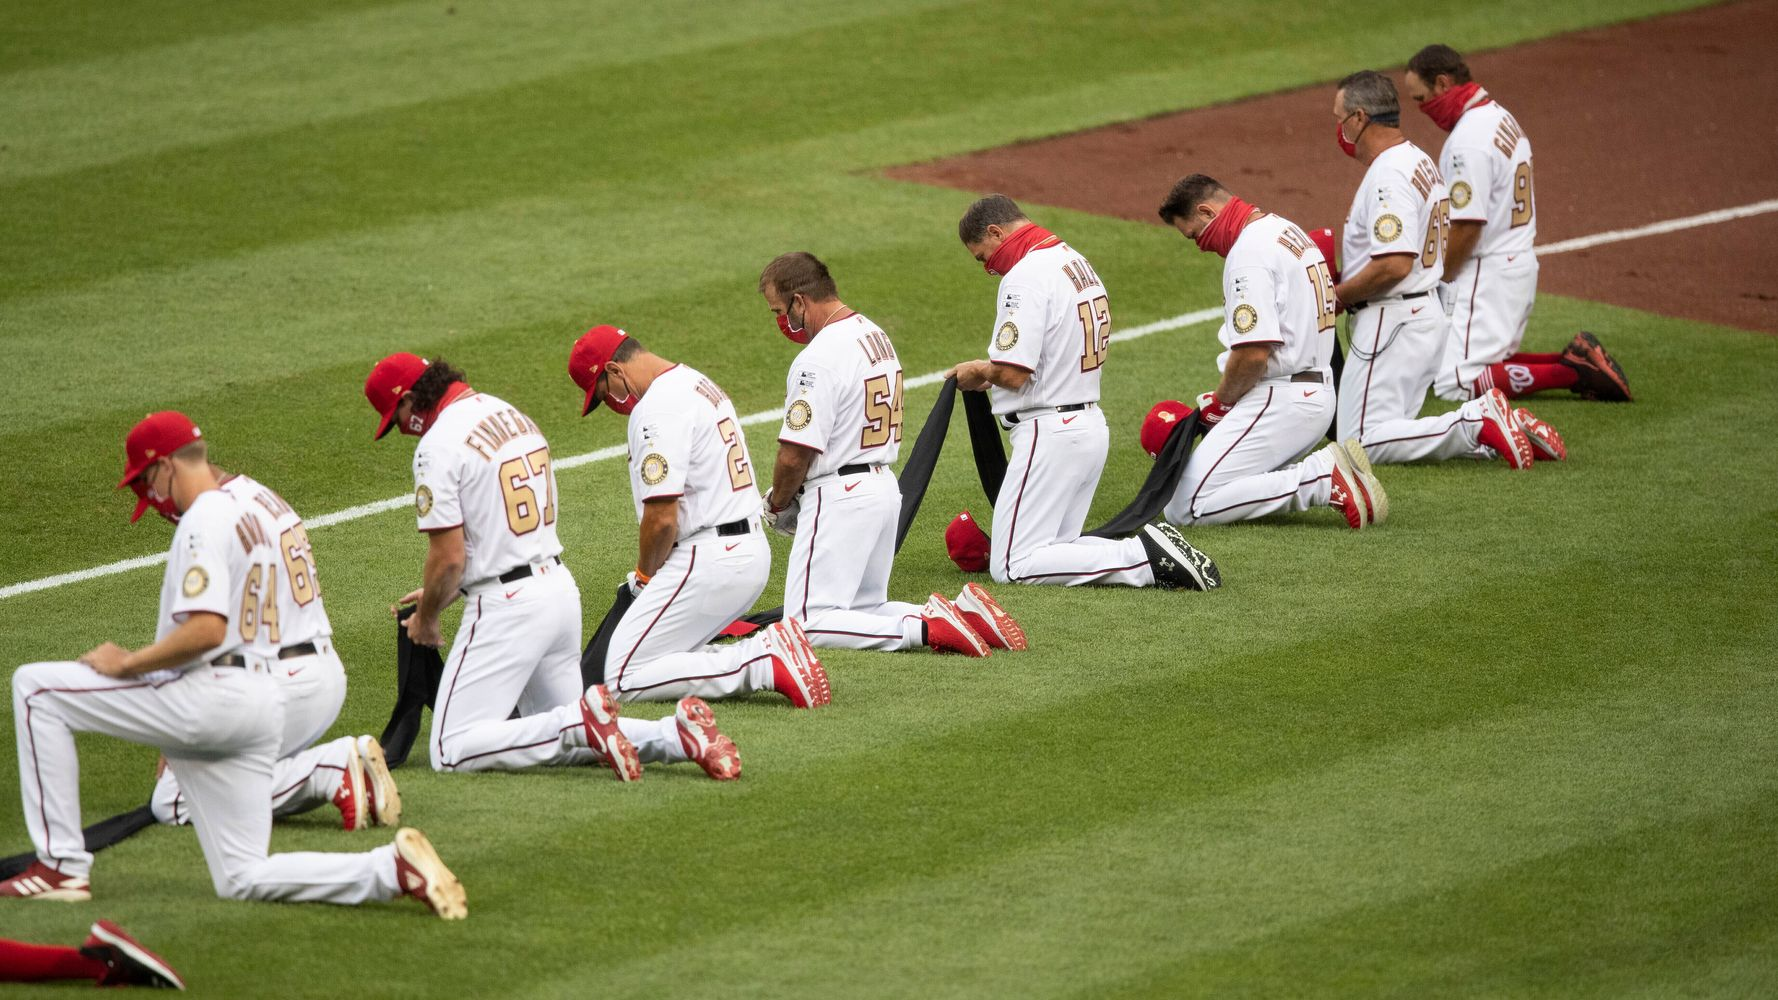 Giants And Dodgers Players Take A Knee During National Anthem ...